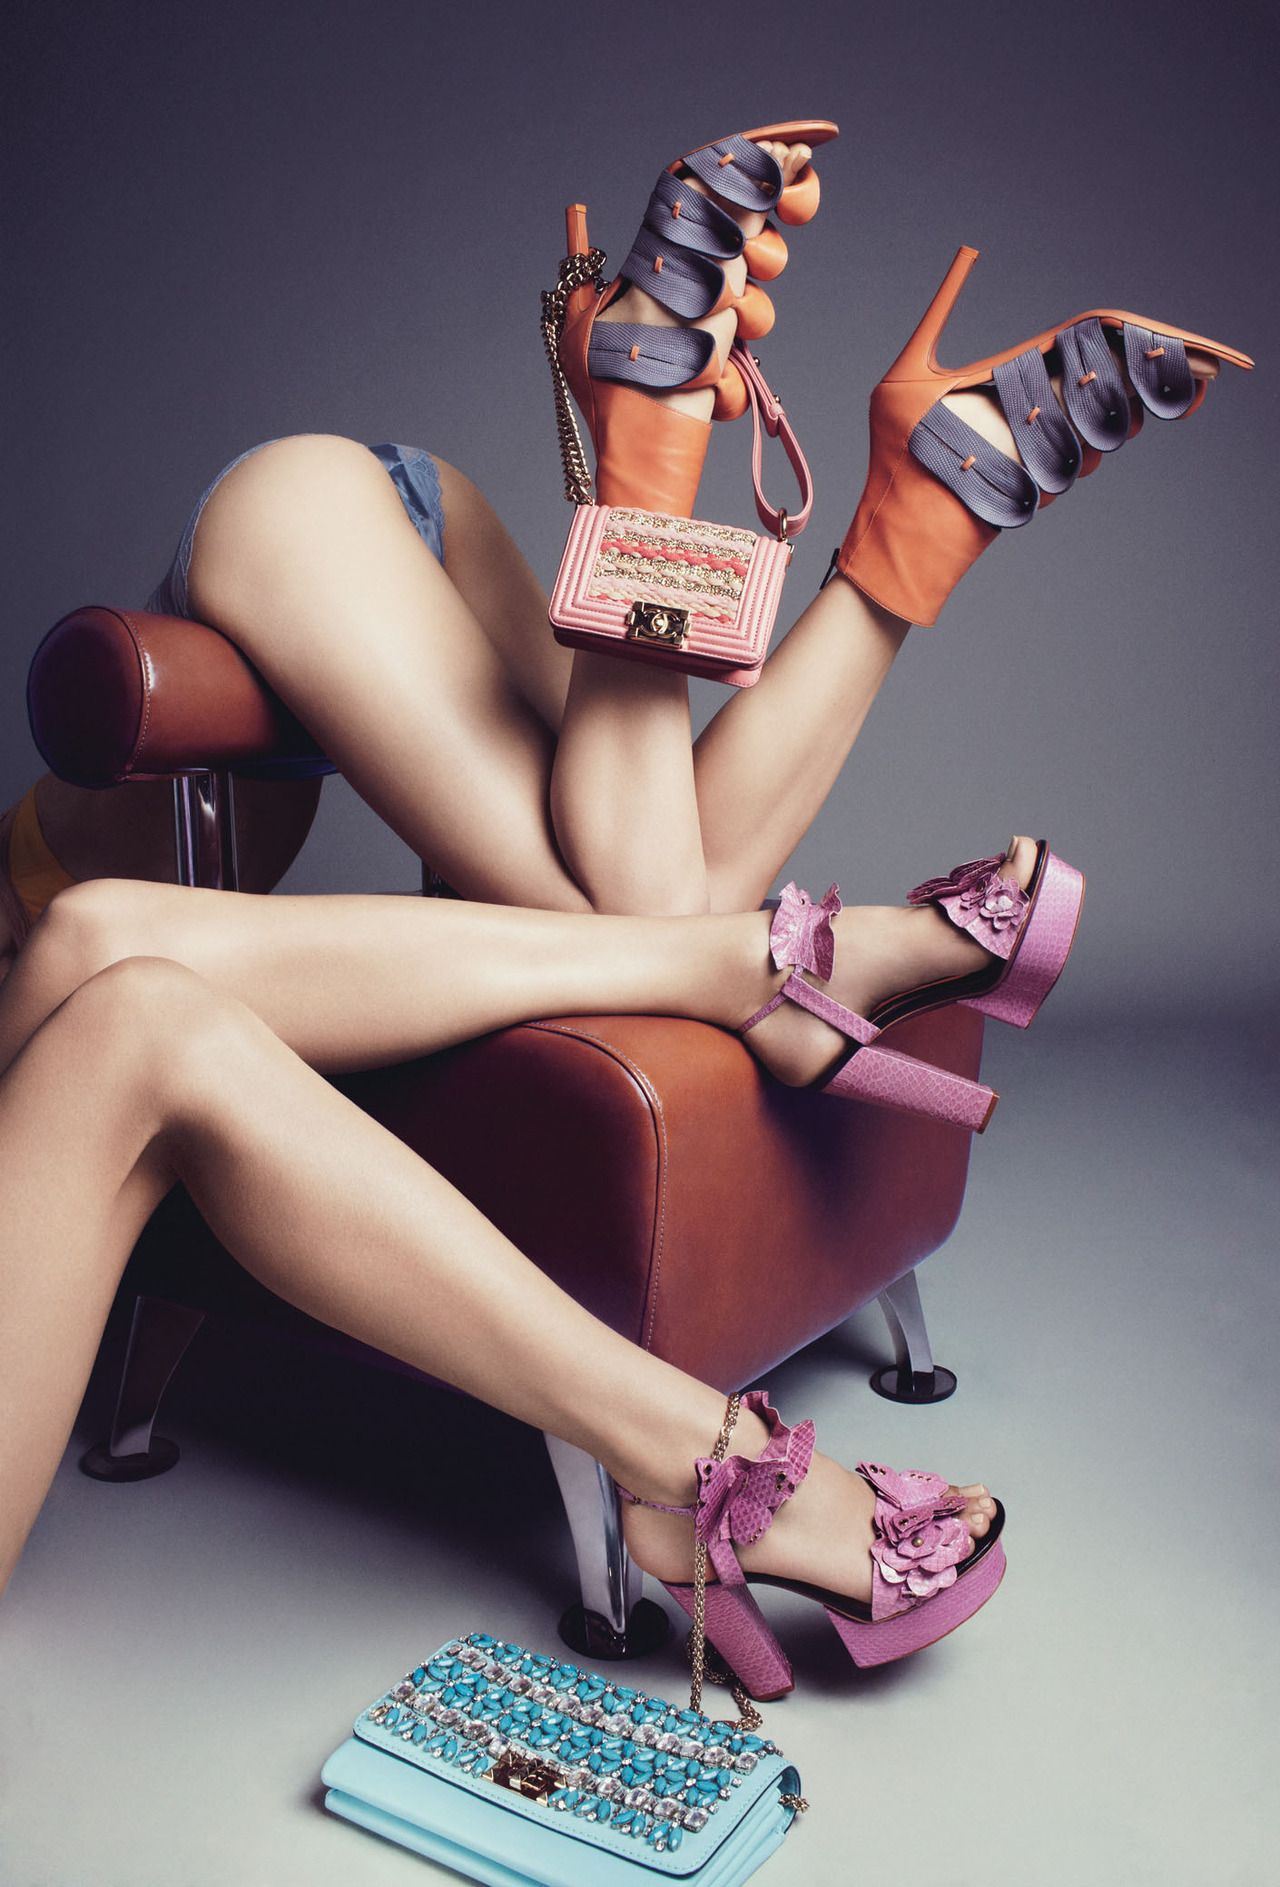 photo by santiago amp mauricio we love shoes yes we do we